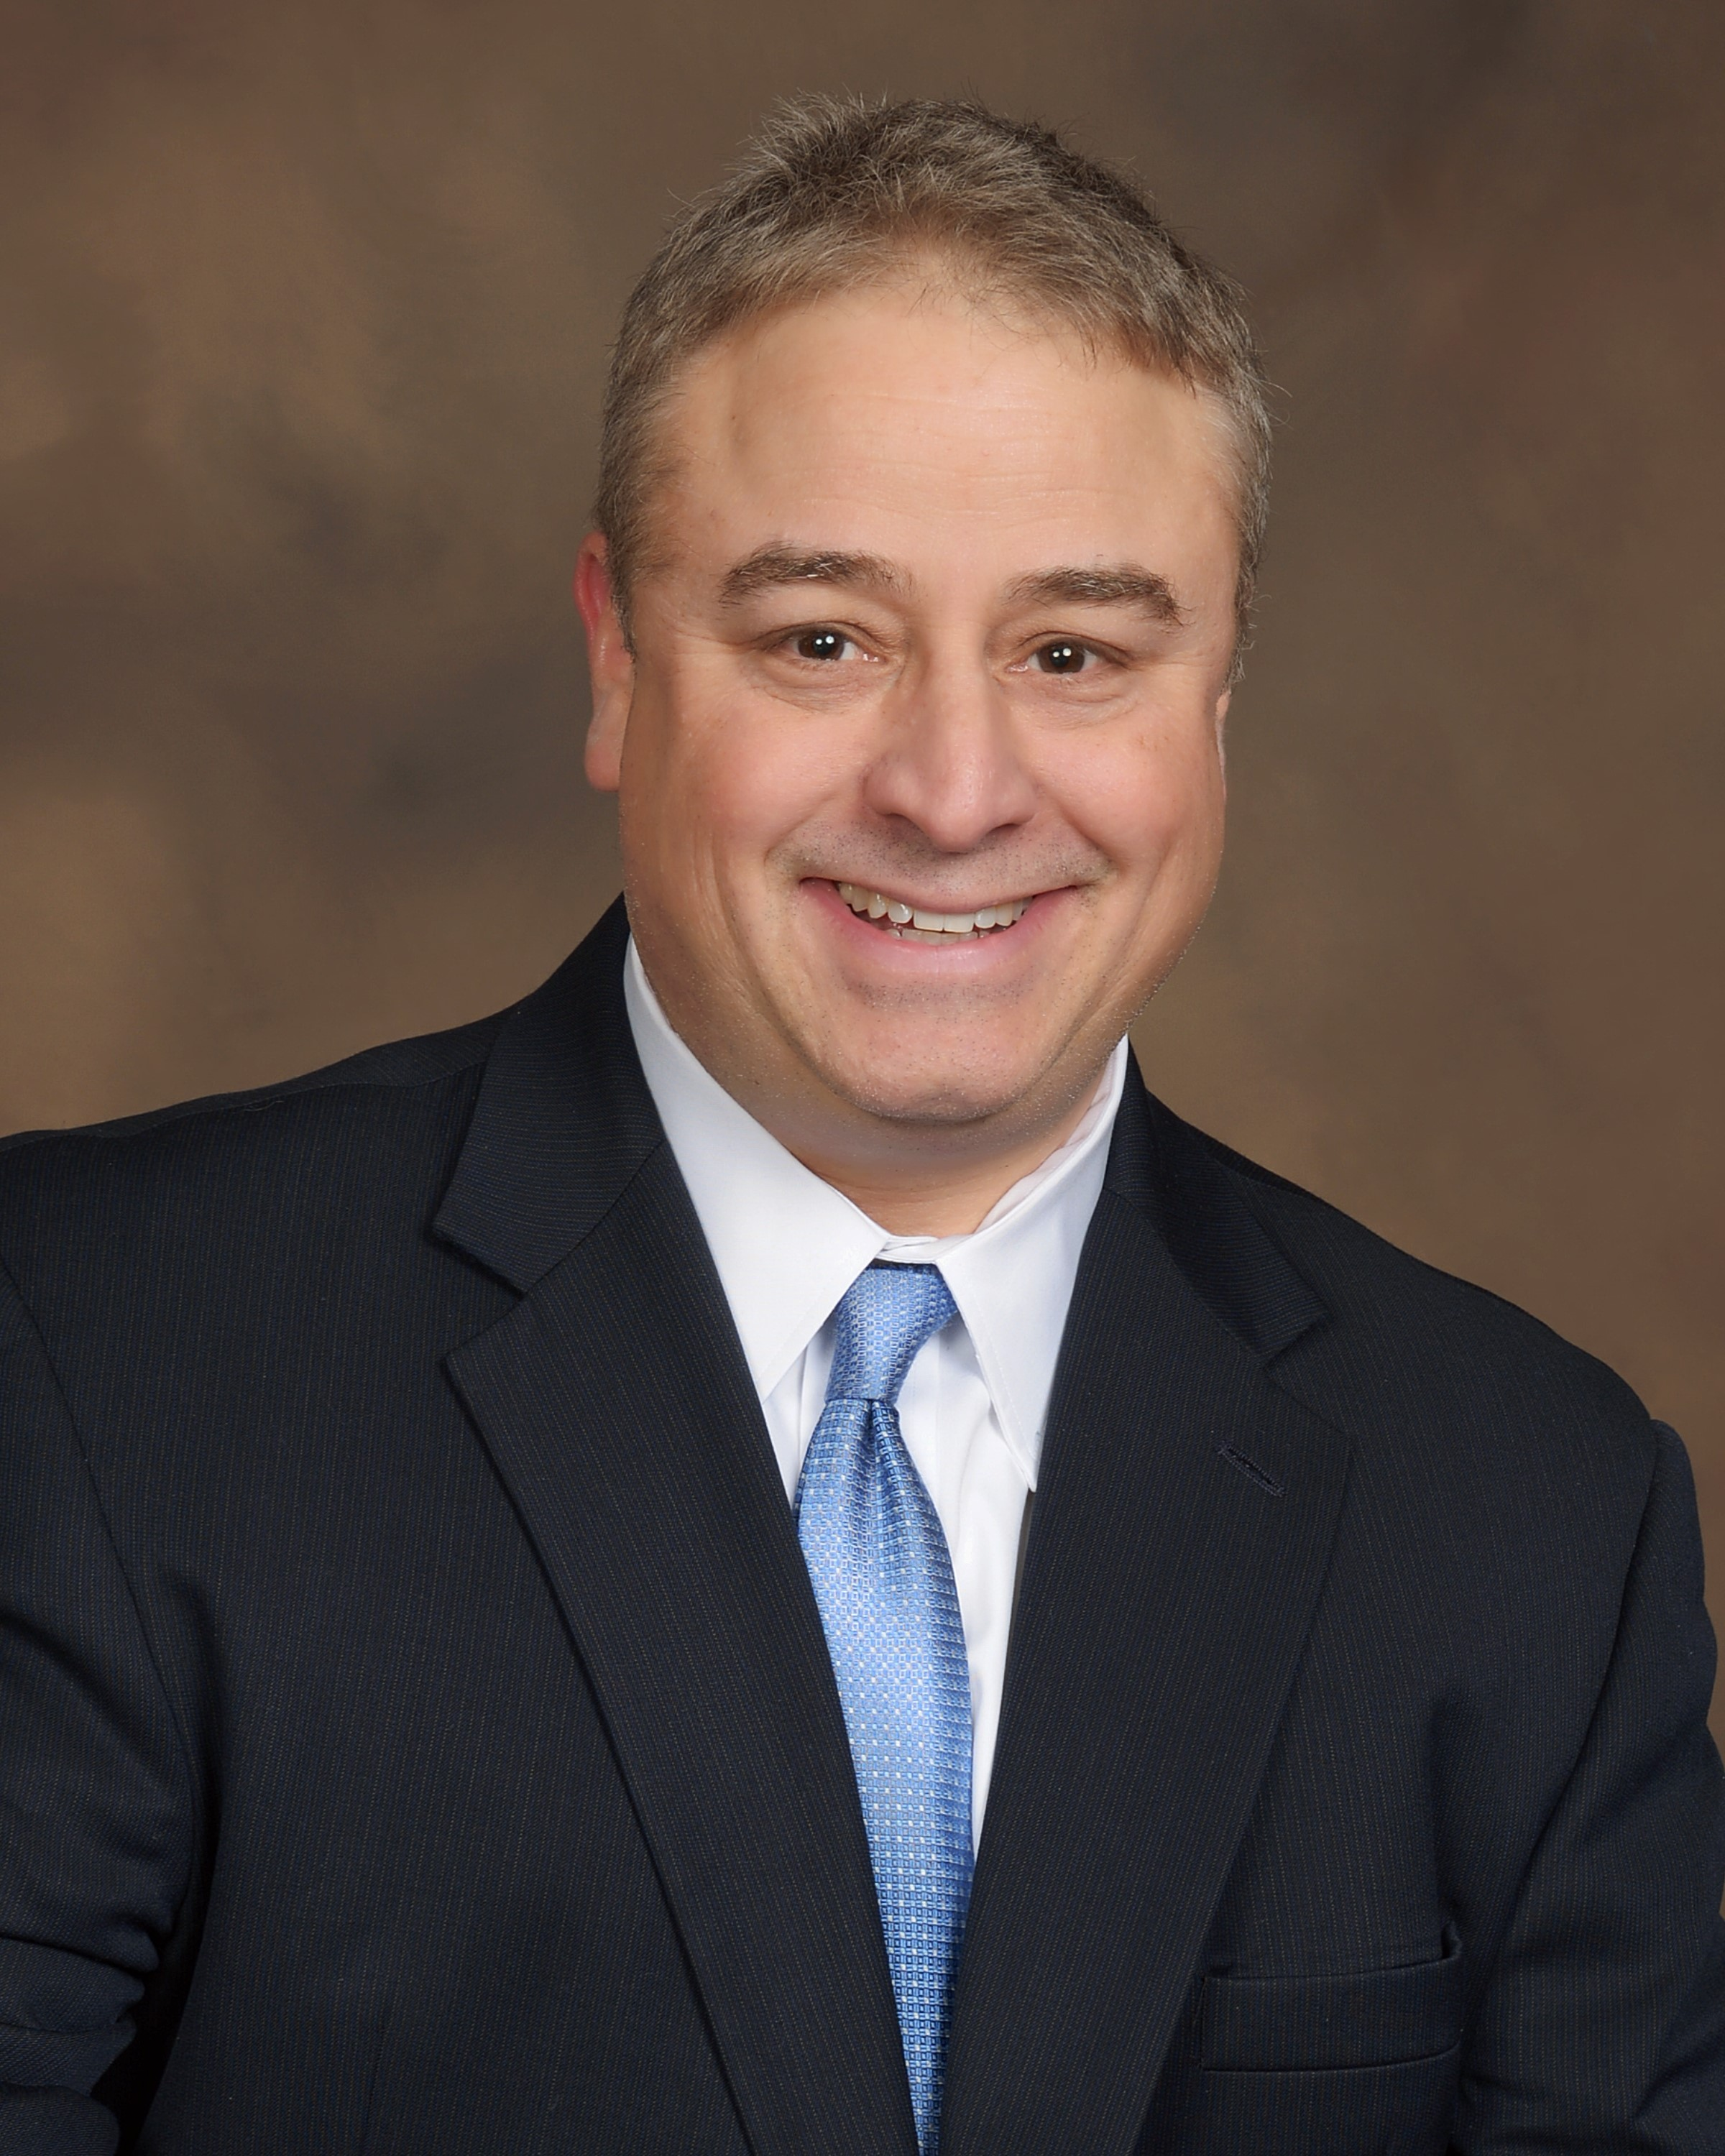 Alan Friedlander, financial advisor Salem WI